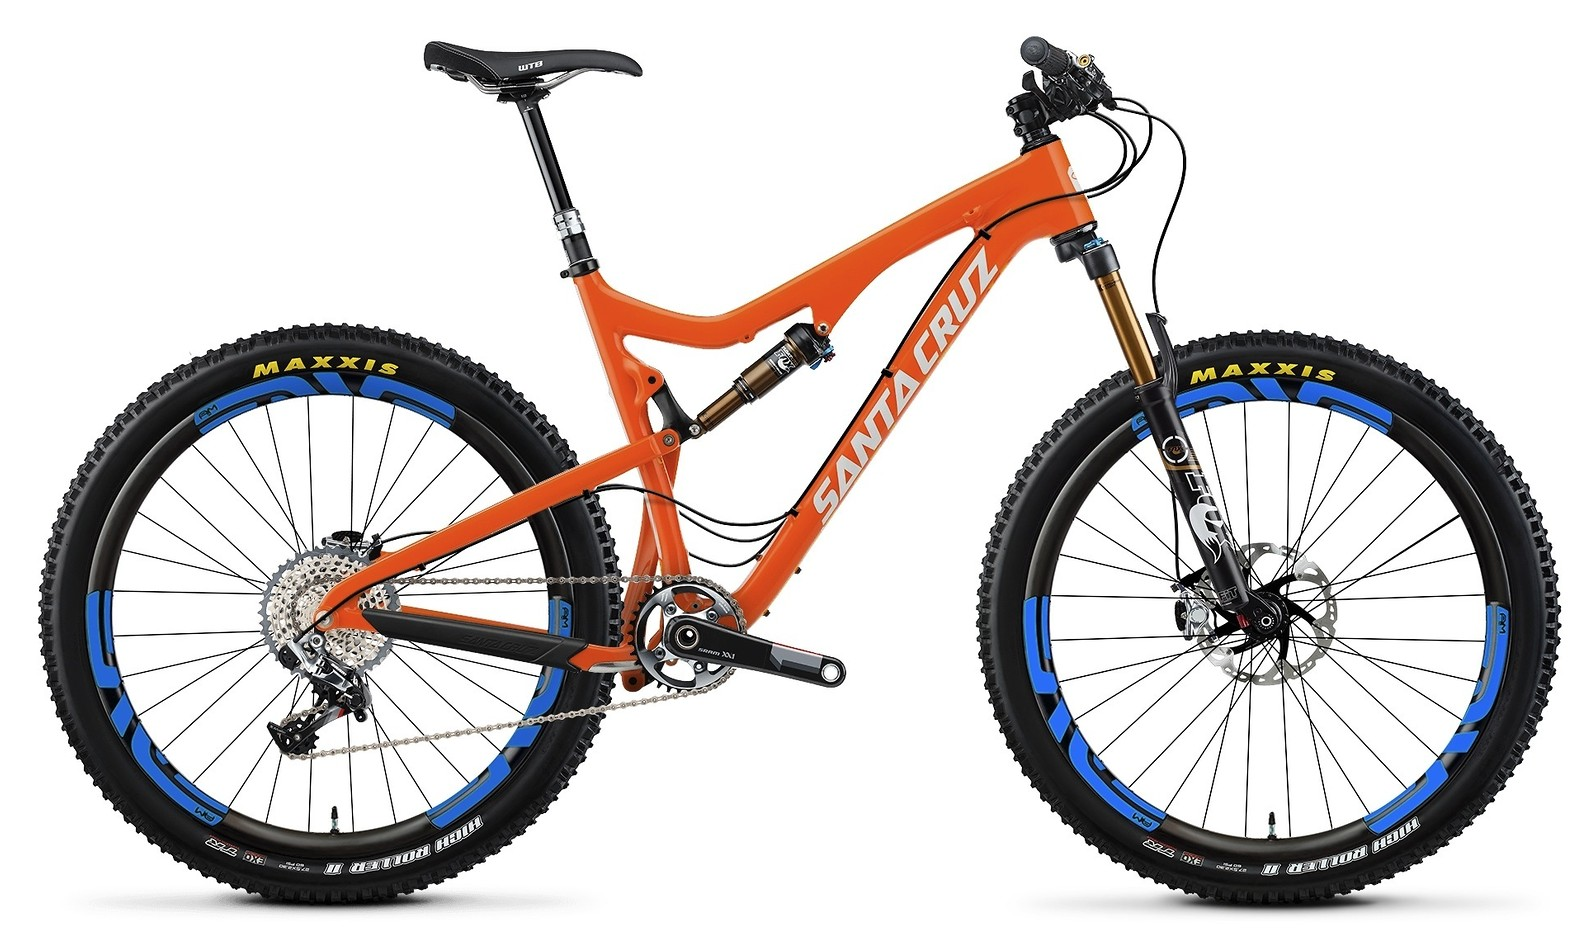 2014 Santa Cruz 5010 Carbon XX1 AM 27.5 with ENVE Wheels  2014 Santa Cruz 5010 Carbon XX1 AM 27.5 with ENVE Wheels